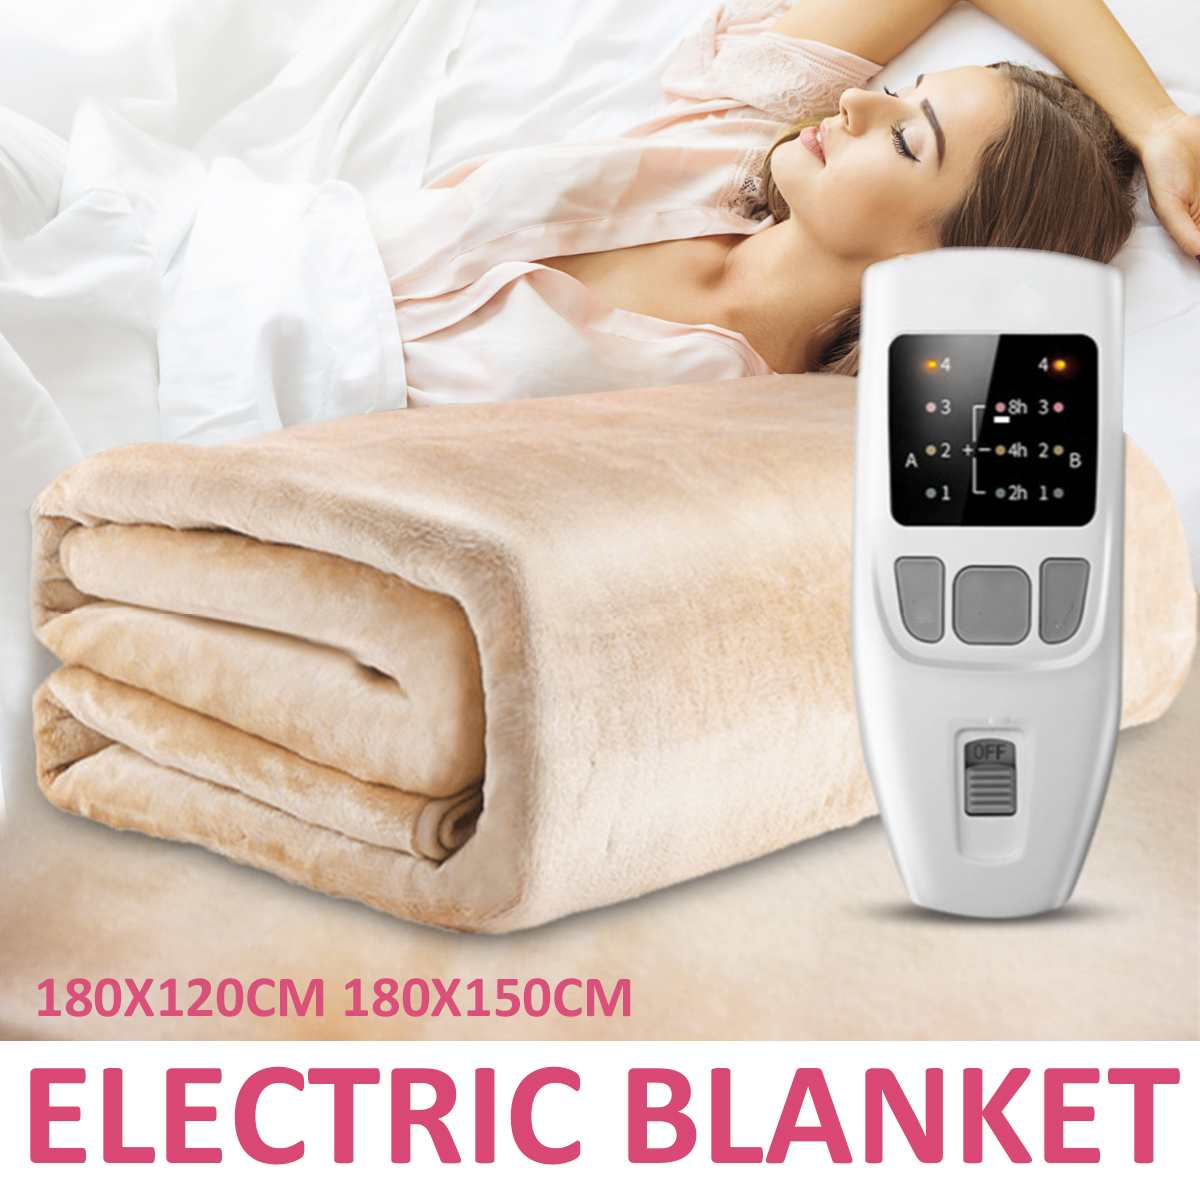 1.8x1.5M Flannel Electric Heating Soft Blanket with Dual Temperature Timing Controller Mat Household Warmer Heater Pad Carpet1.8x1.5M Flannel Electric Heating Soft Blanket with Dual Temperature Timing Controller Mat Household Warmer Heater Pad Carpet